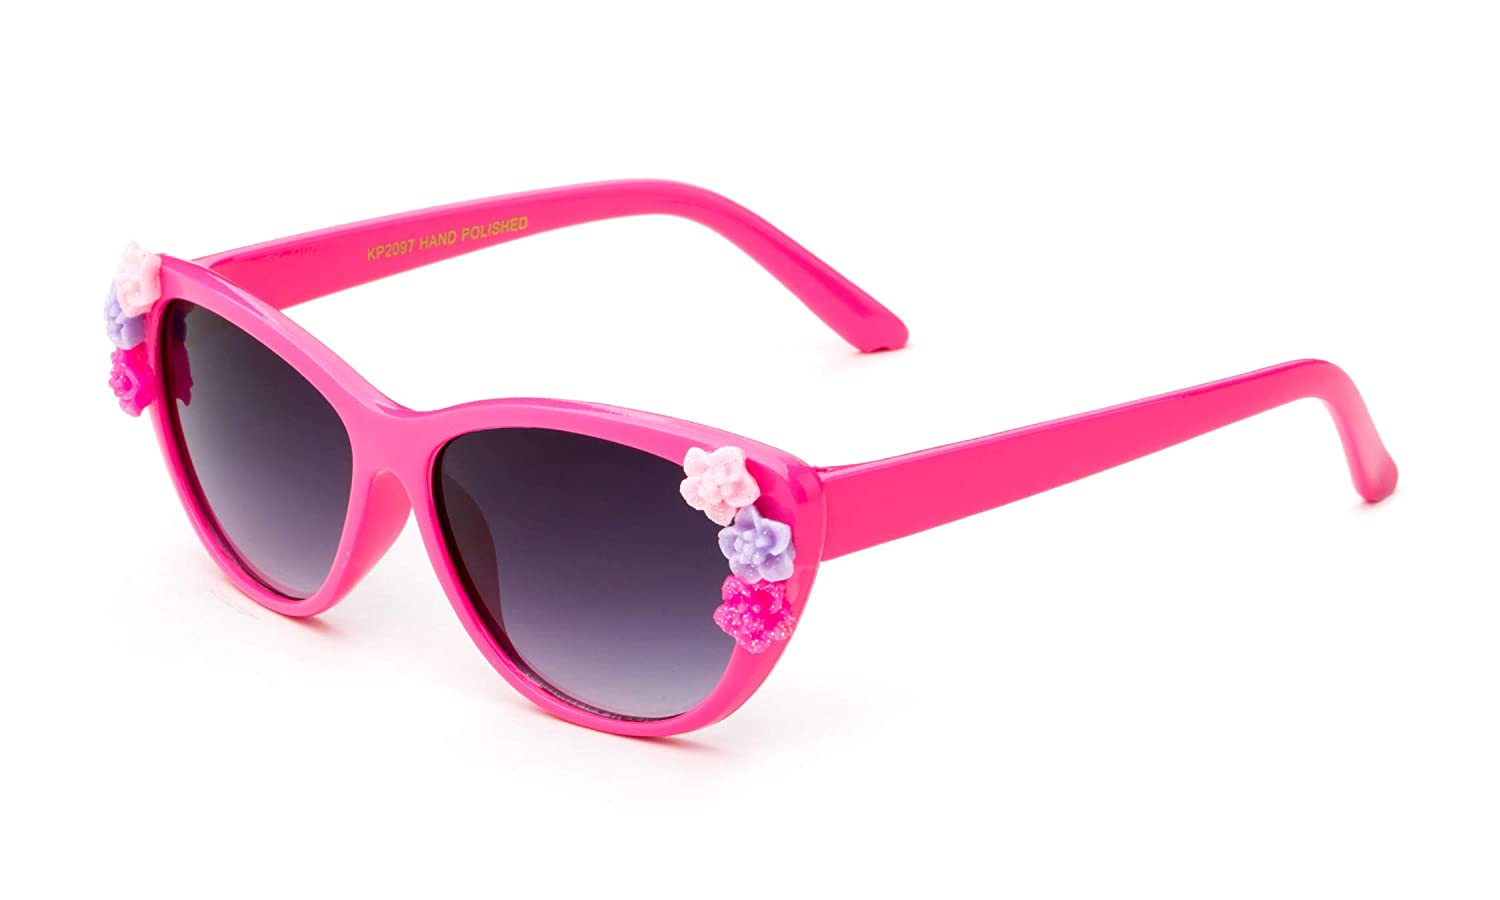 0-5 YRS Newbee Fashion Kids Girls Toddlers Fashion Sunglasses Cateye Cute Sunglasses with Flowers UV Protection w//Pouch